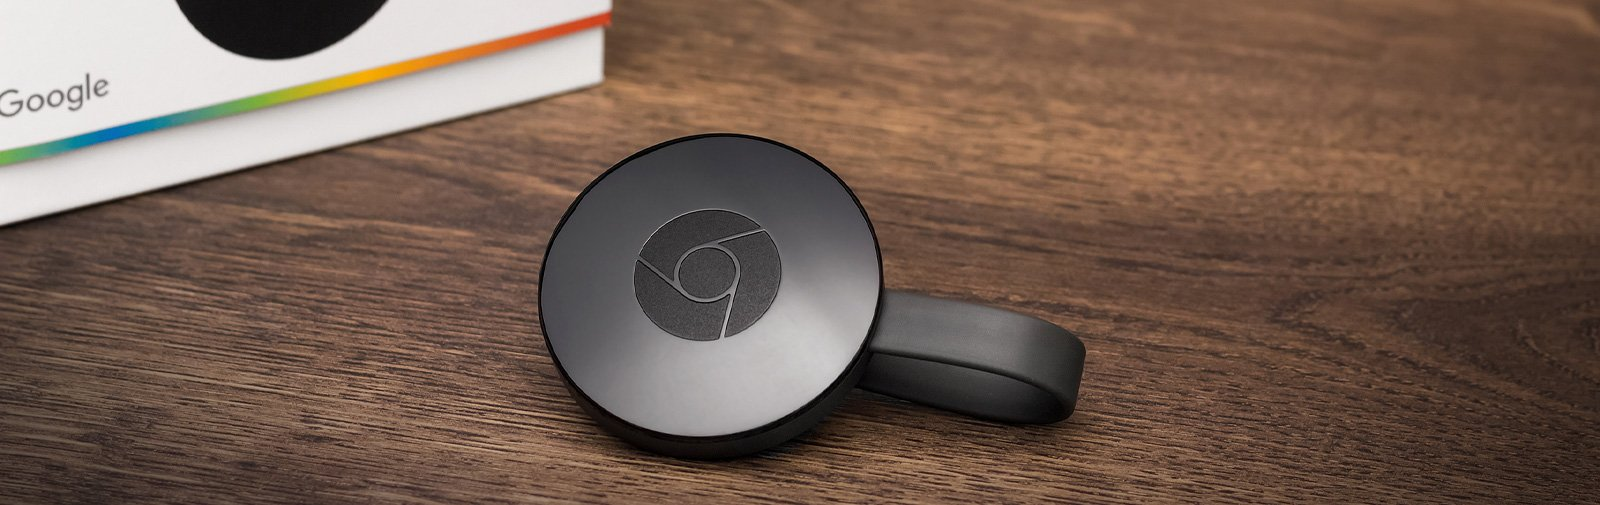 How Do You Connect Chromecast to Your Computer